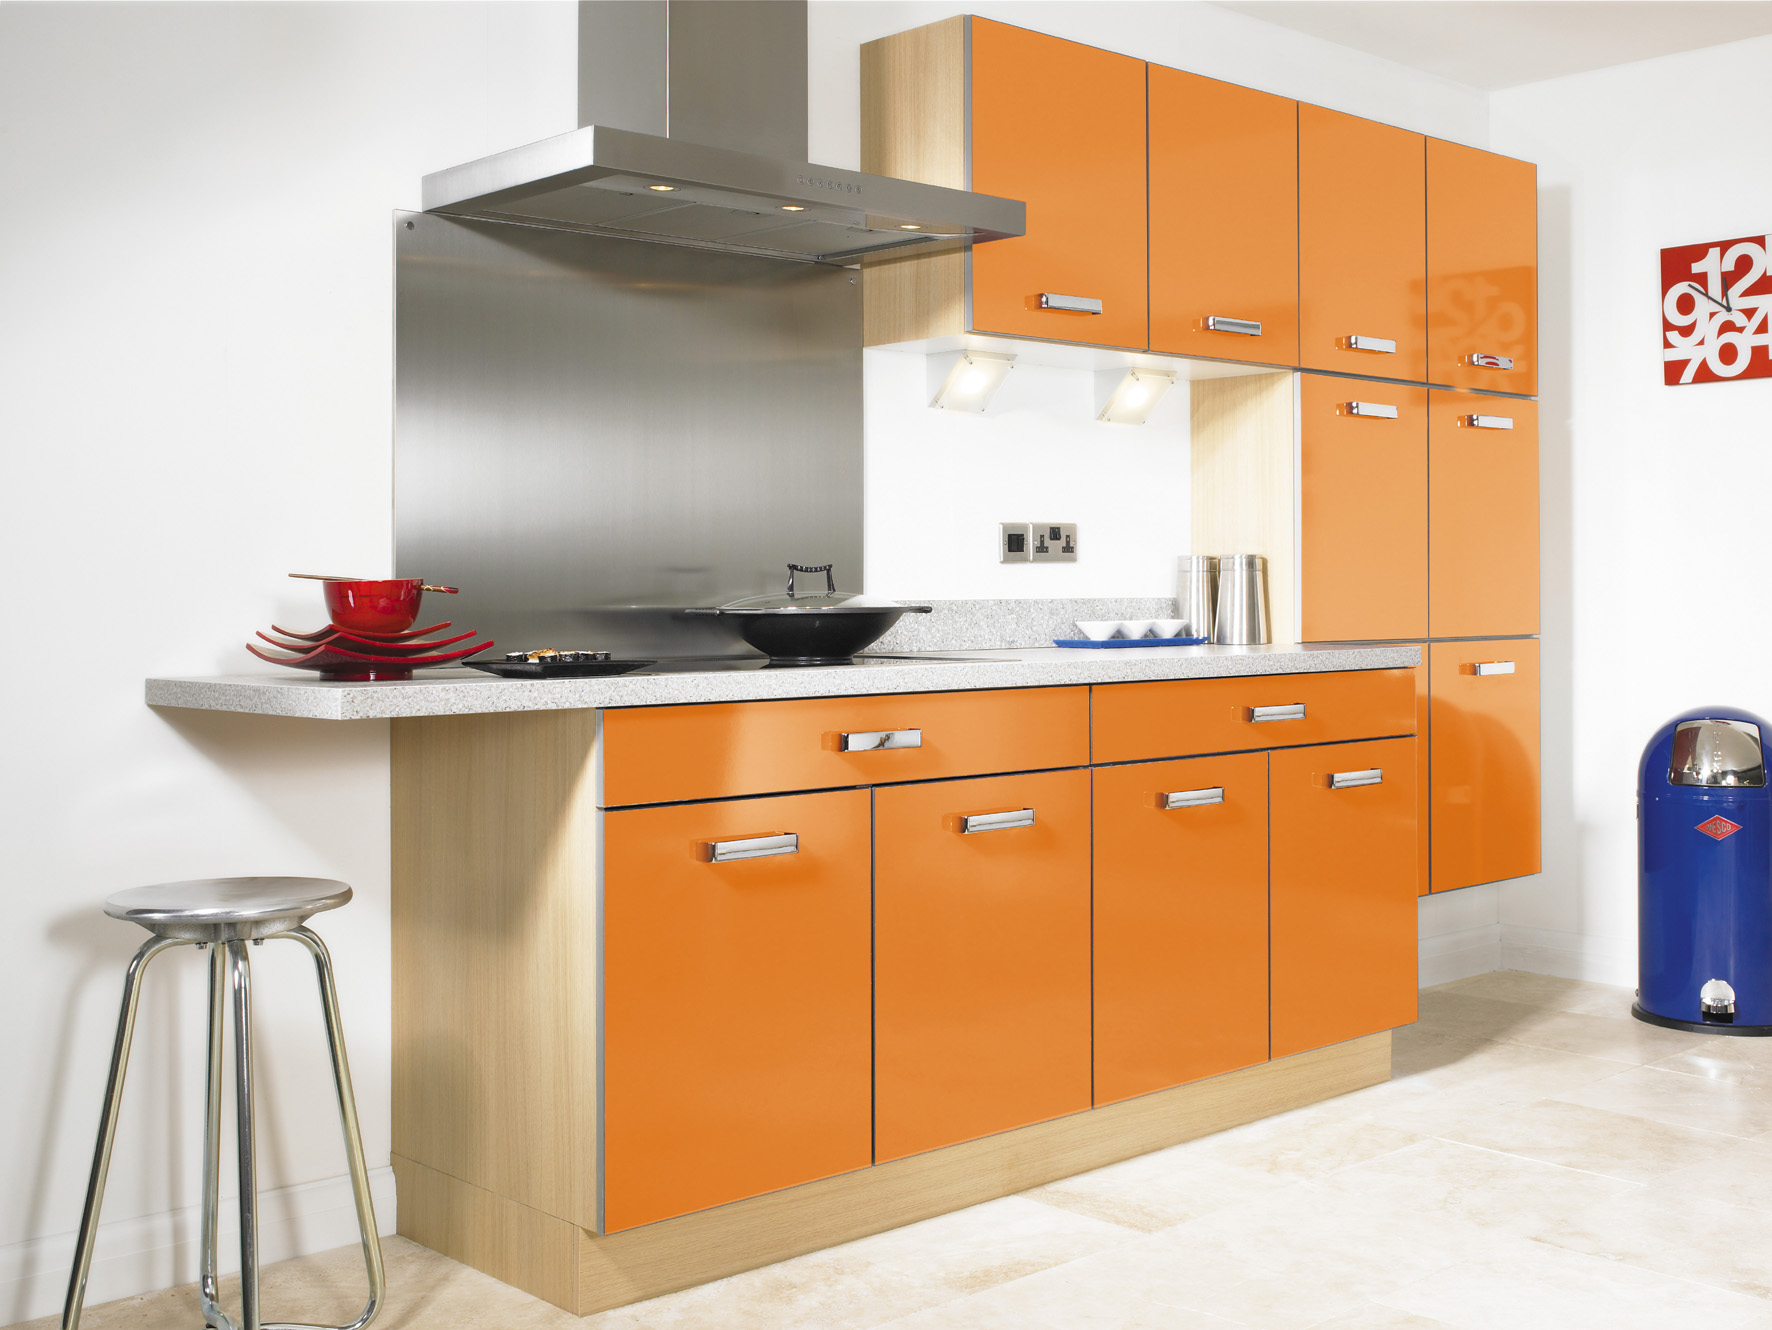 Outstanding Orange Kitchen Design 1772 x 1330 · 364 kB · jpeg